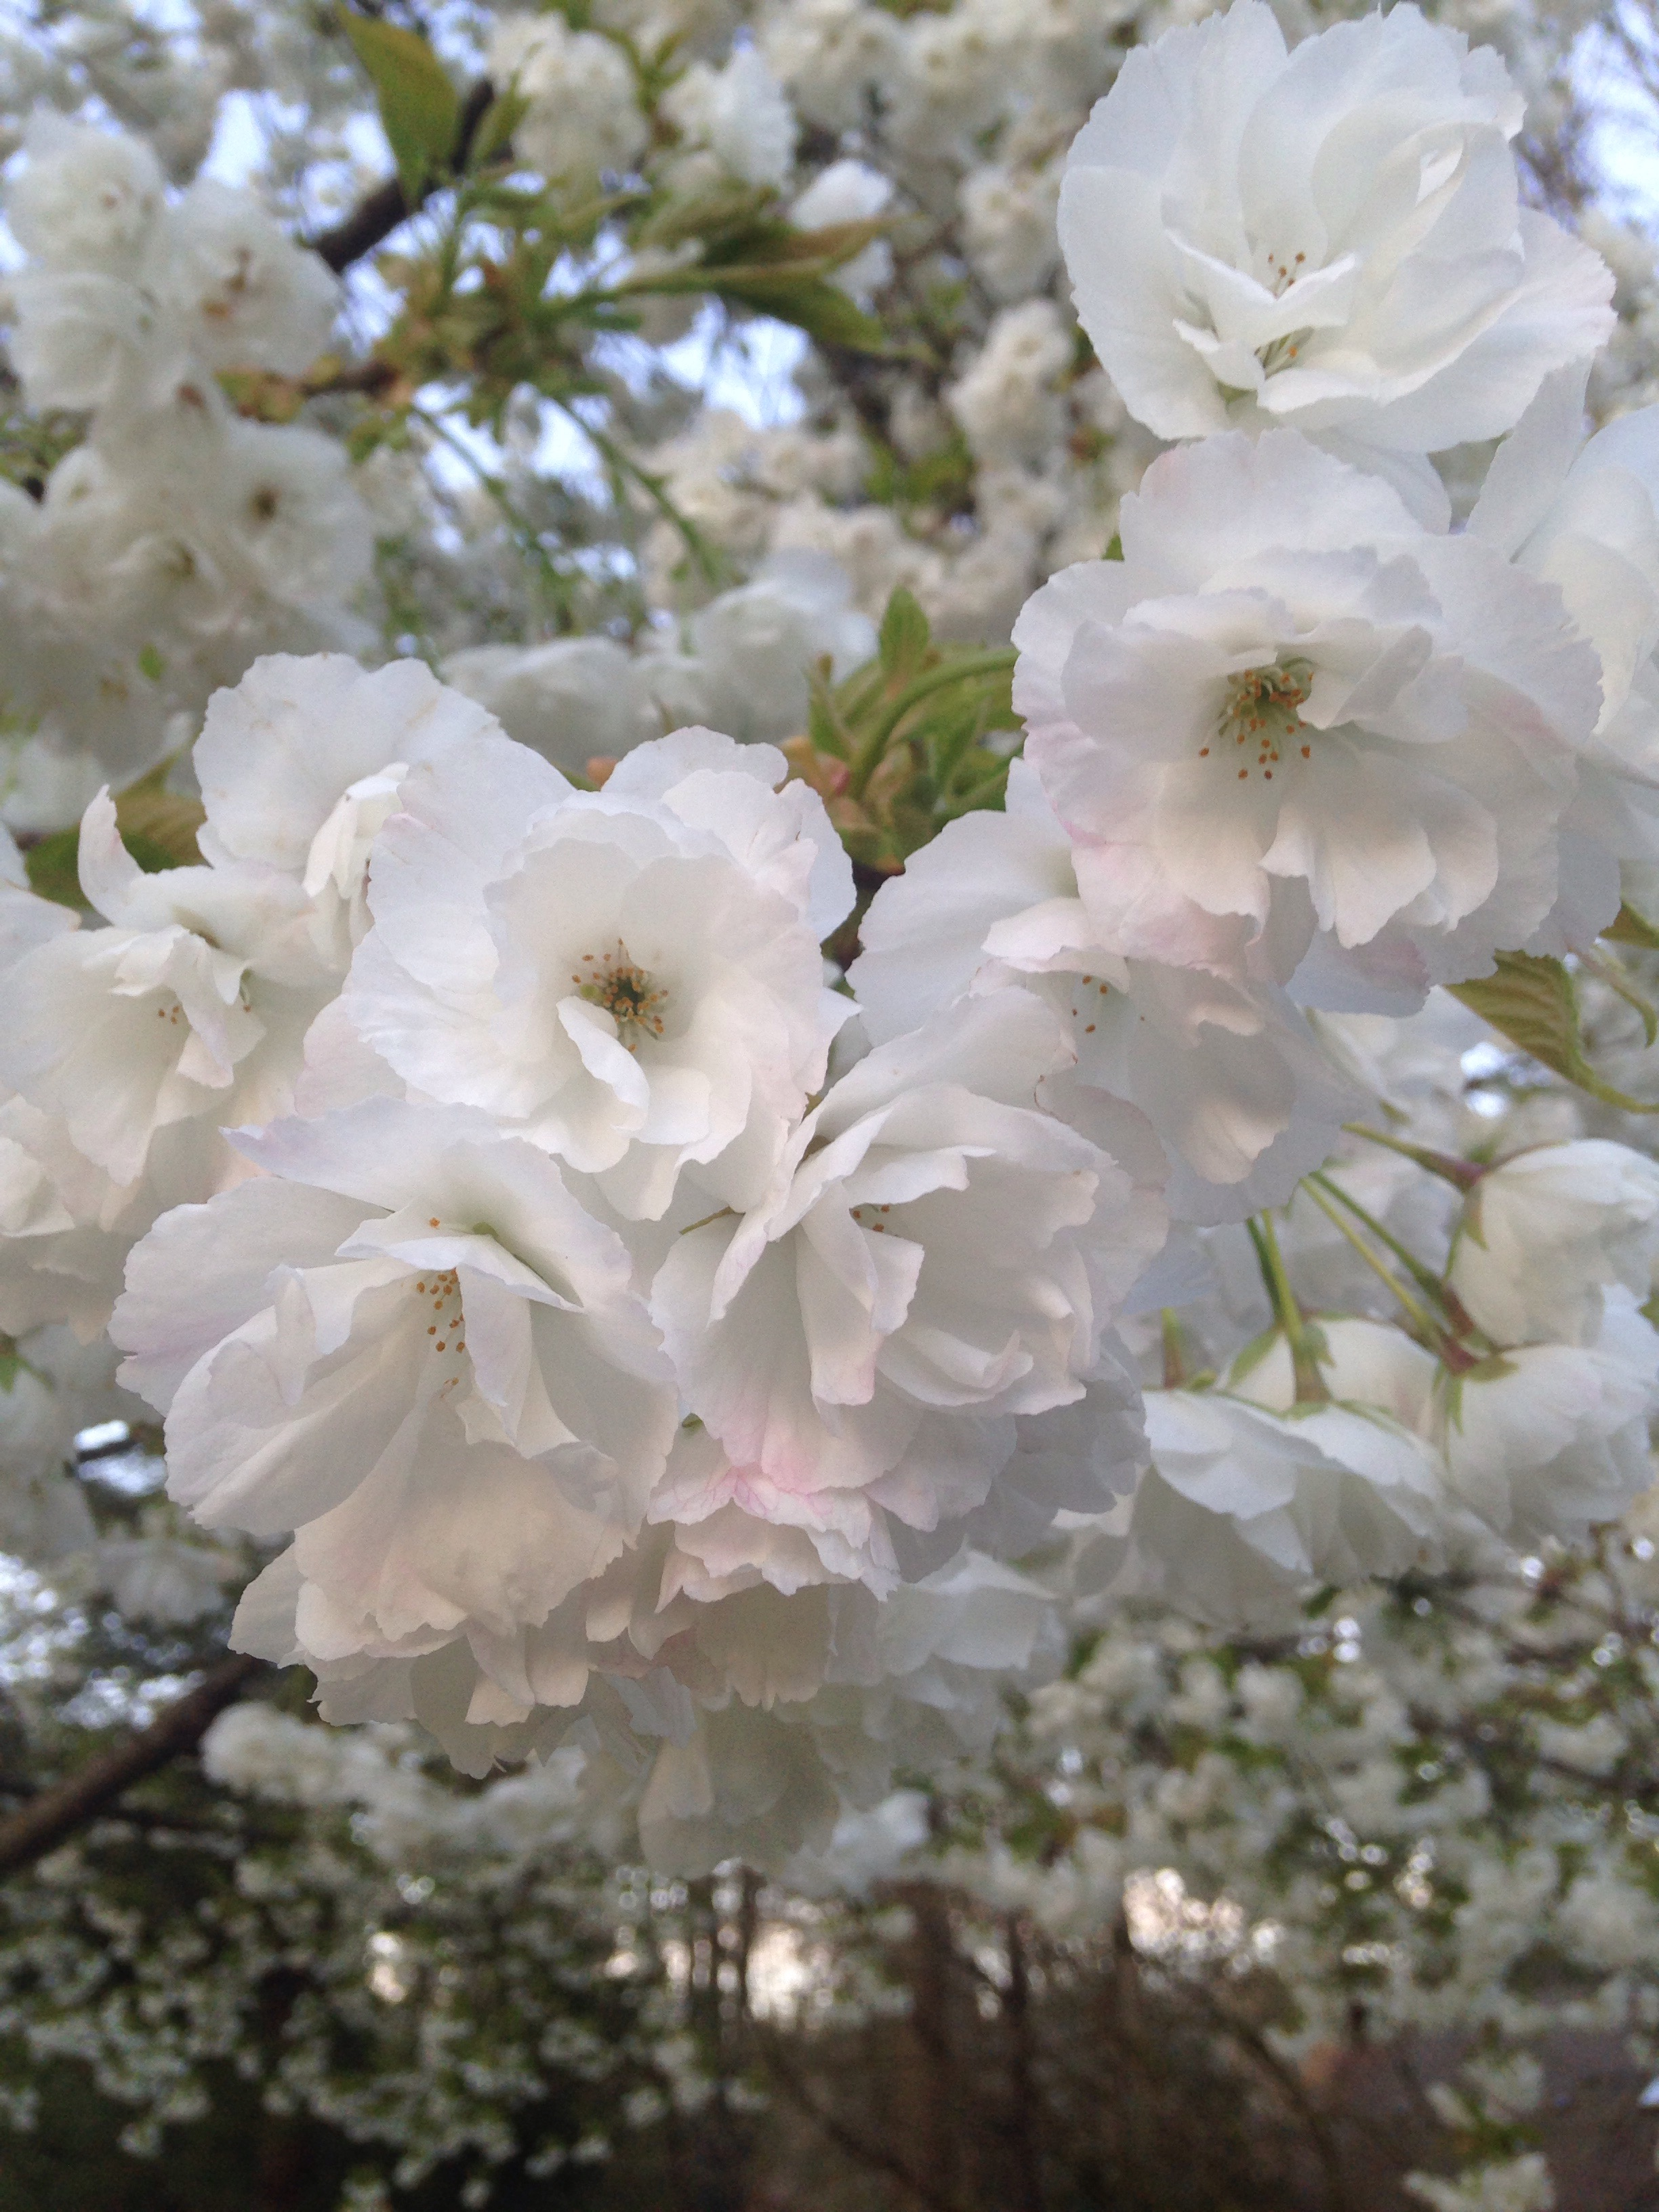 Mount fuji flowering cherrya tree for the moment rainyleaf the double pure white blossoms of the mount fuji flowering cherry opened last month and i knew that was my favorite tree it called to me on my walks and i mightylinksfo